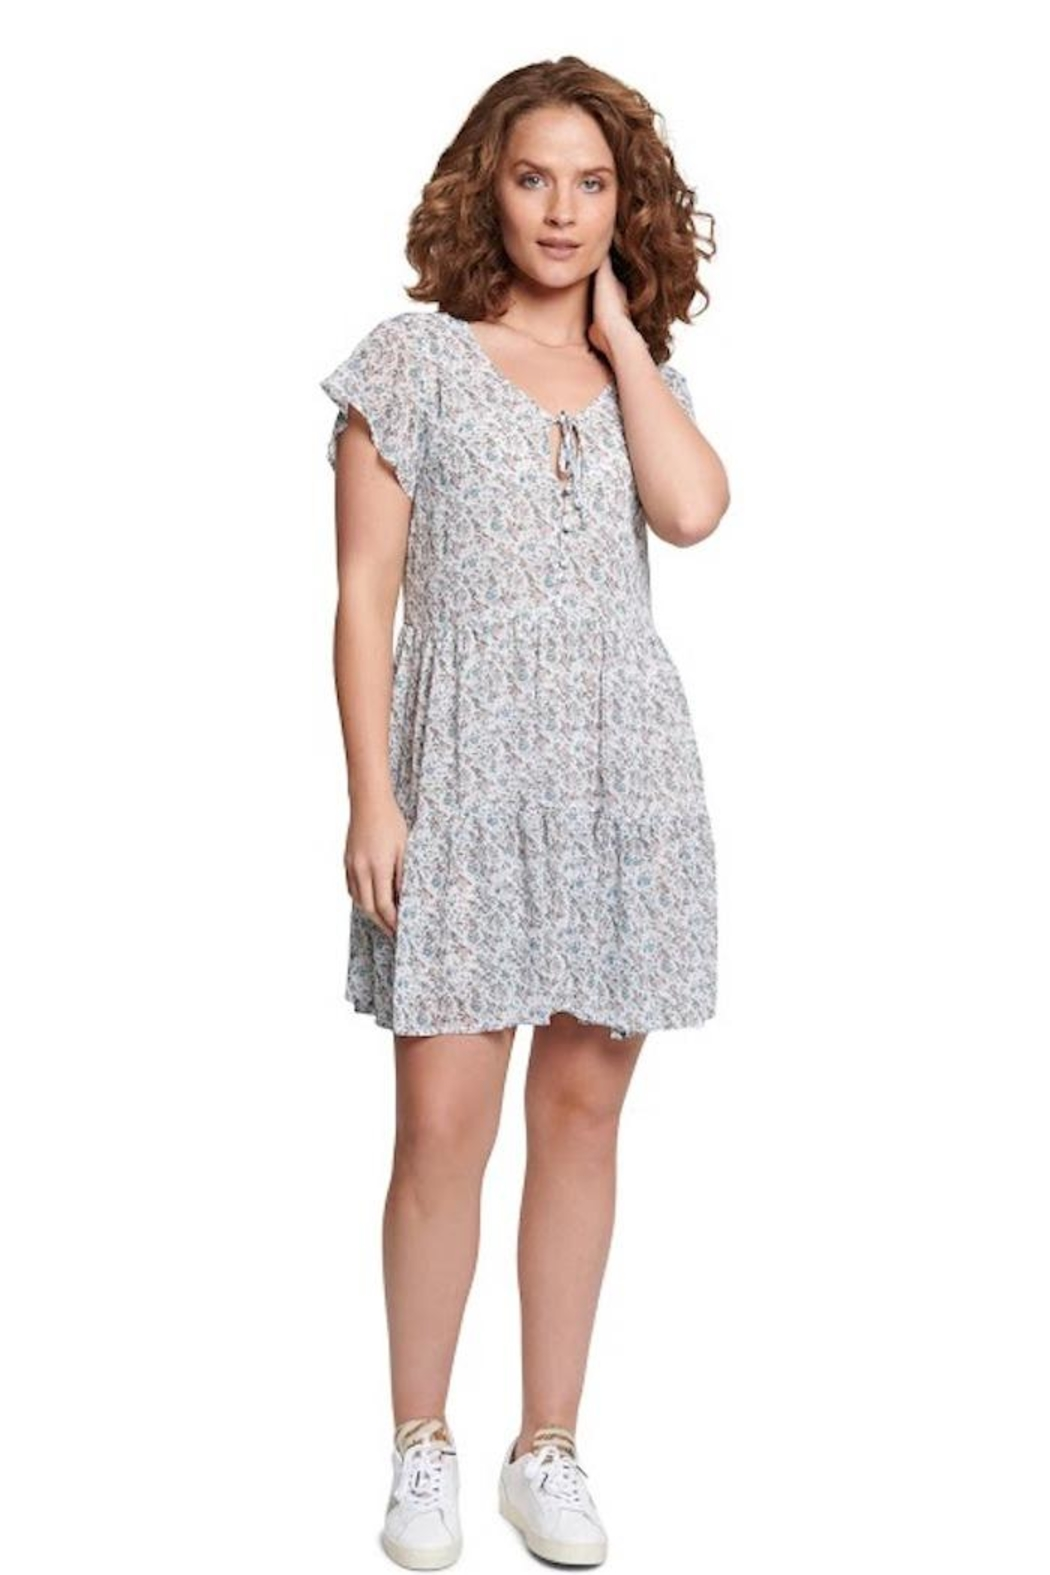 TAGS Winter White Floral Dress - Main Image